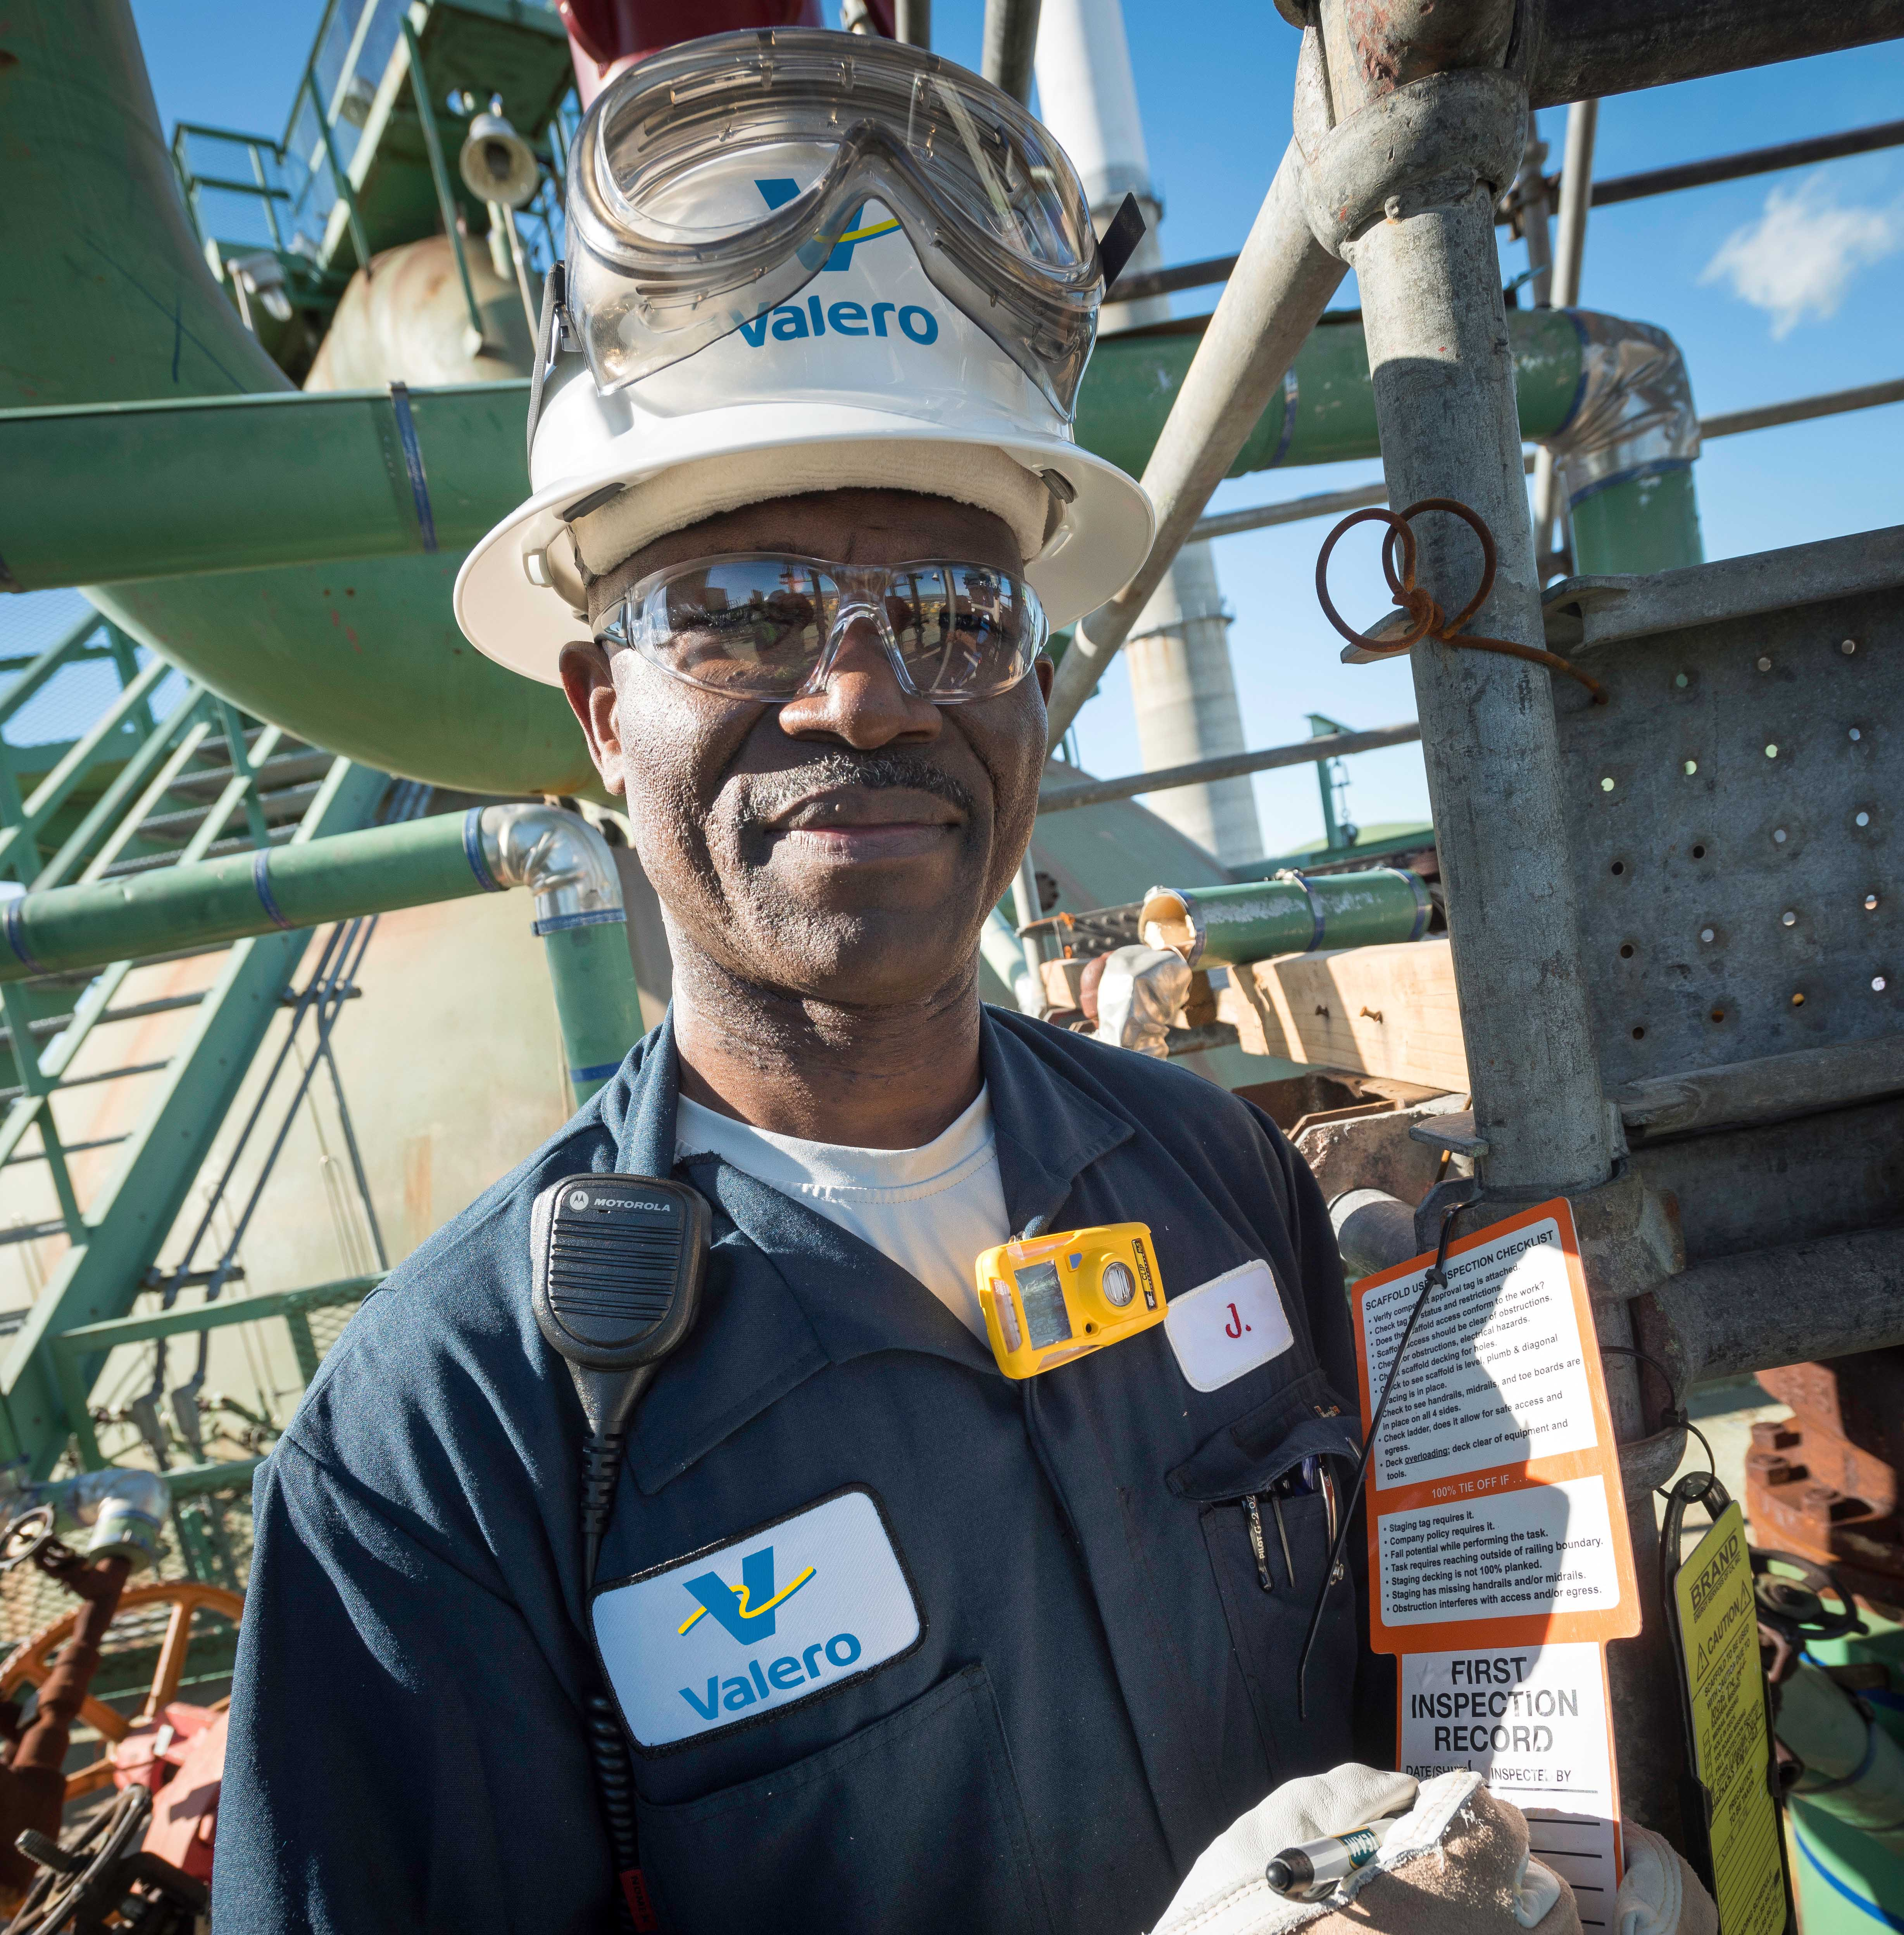 Valero refinery employee doing safety inspection